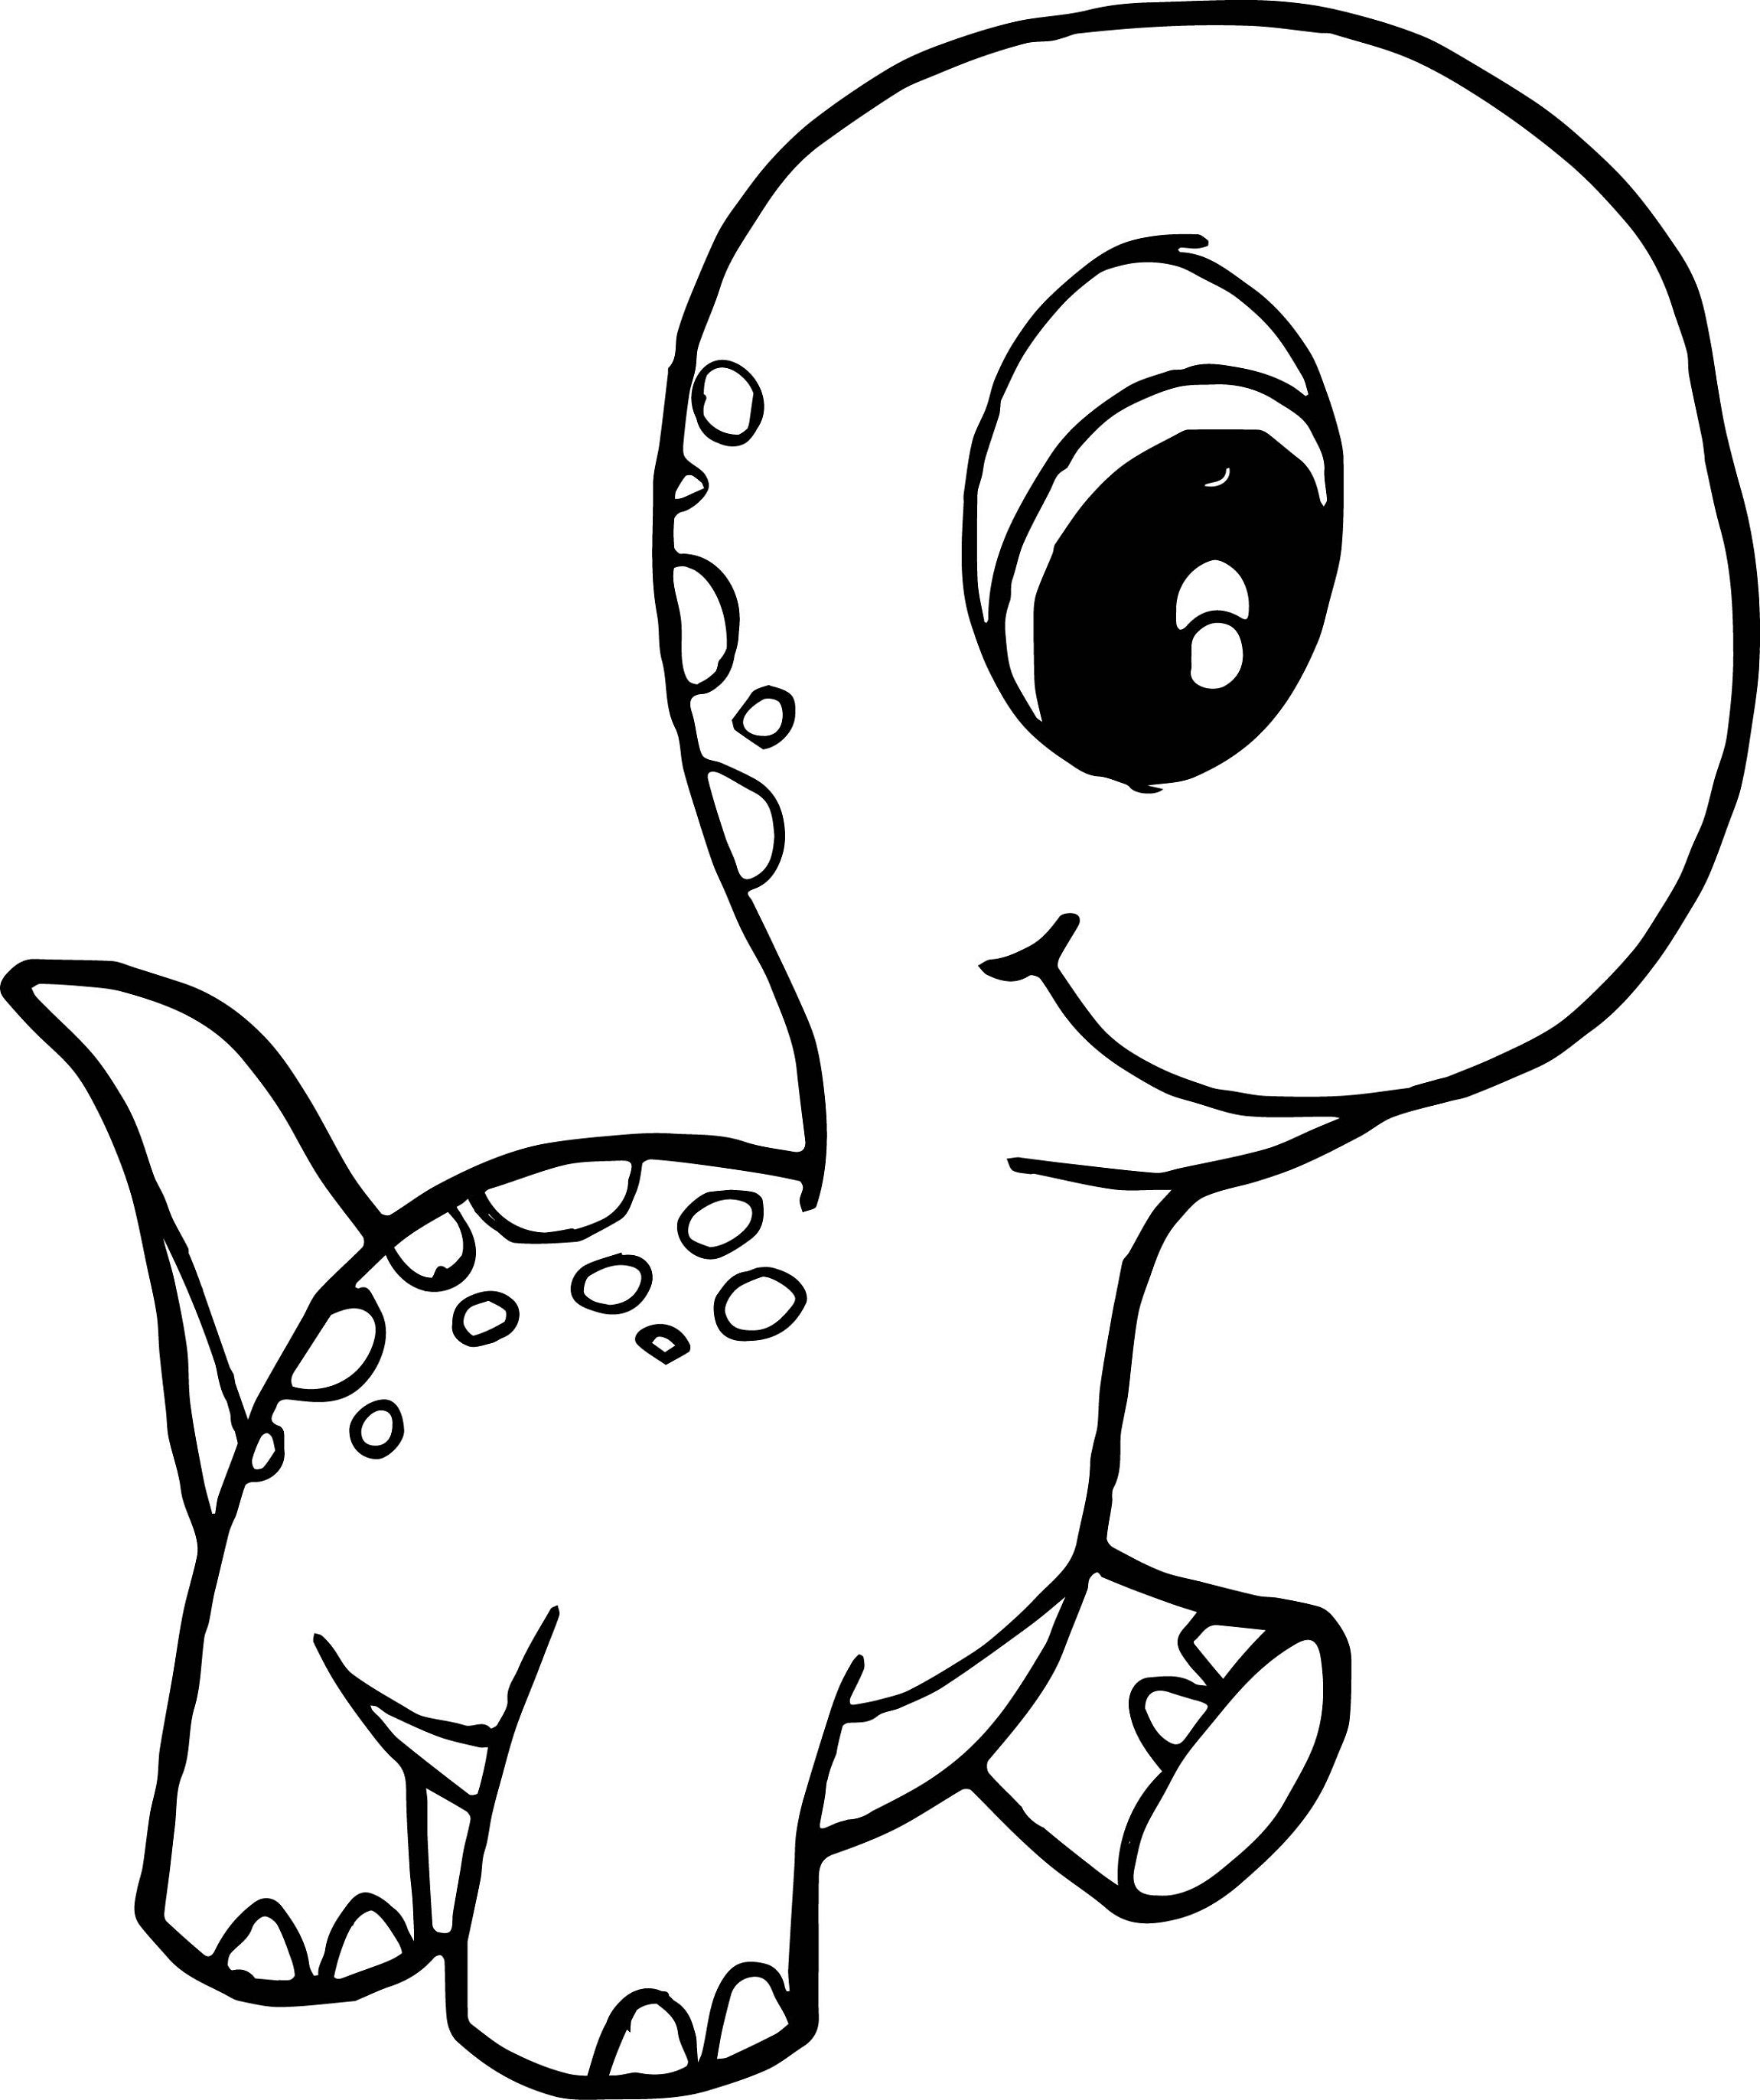 dinosaur colouring pages printable baby dinosaur coloring pages to download and print for free dinosaur colouring printable pages